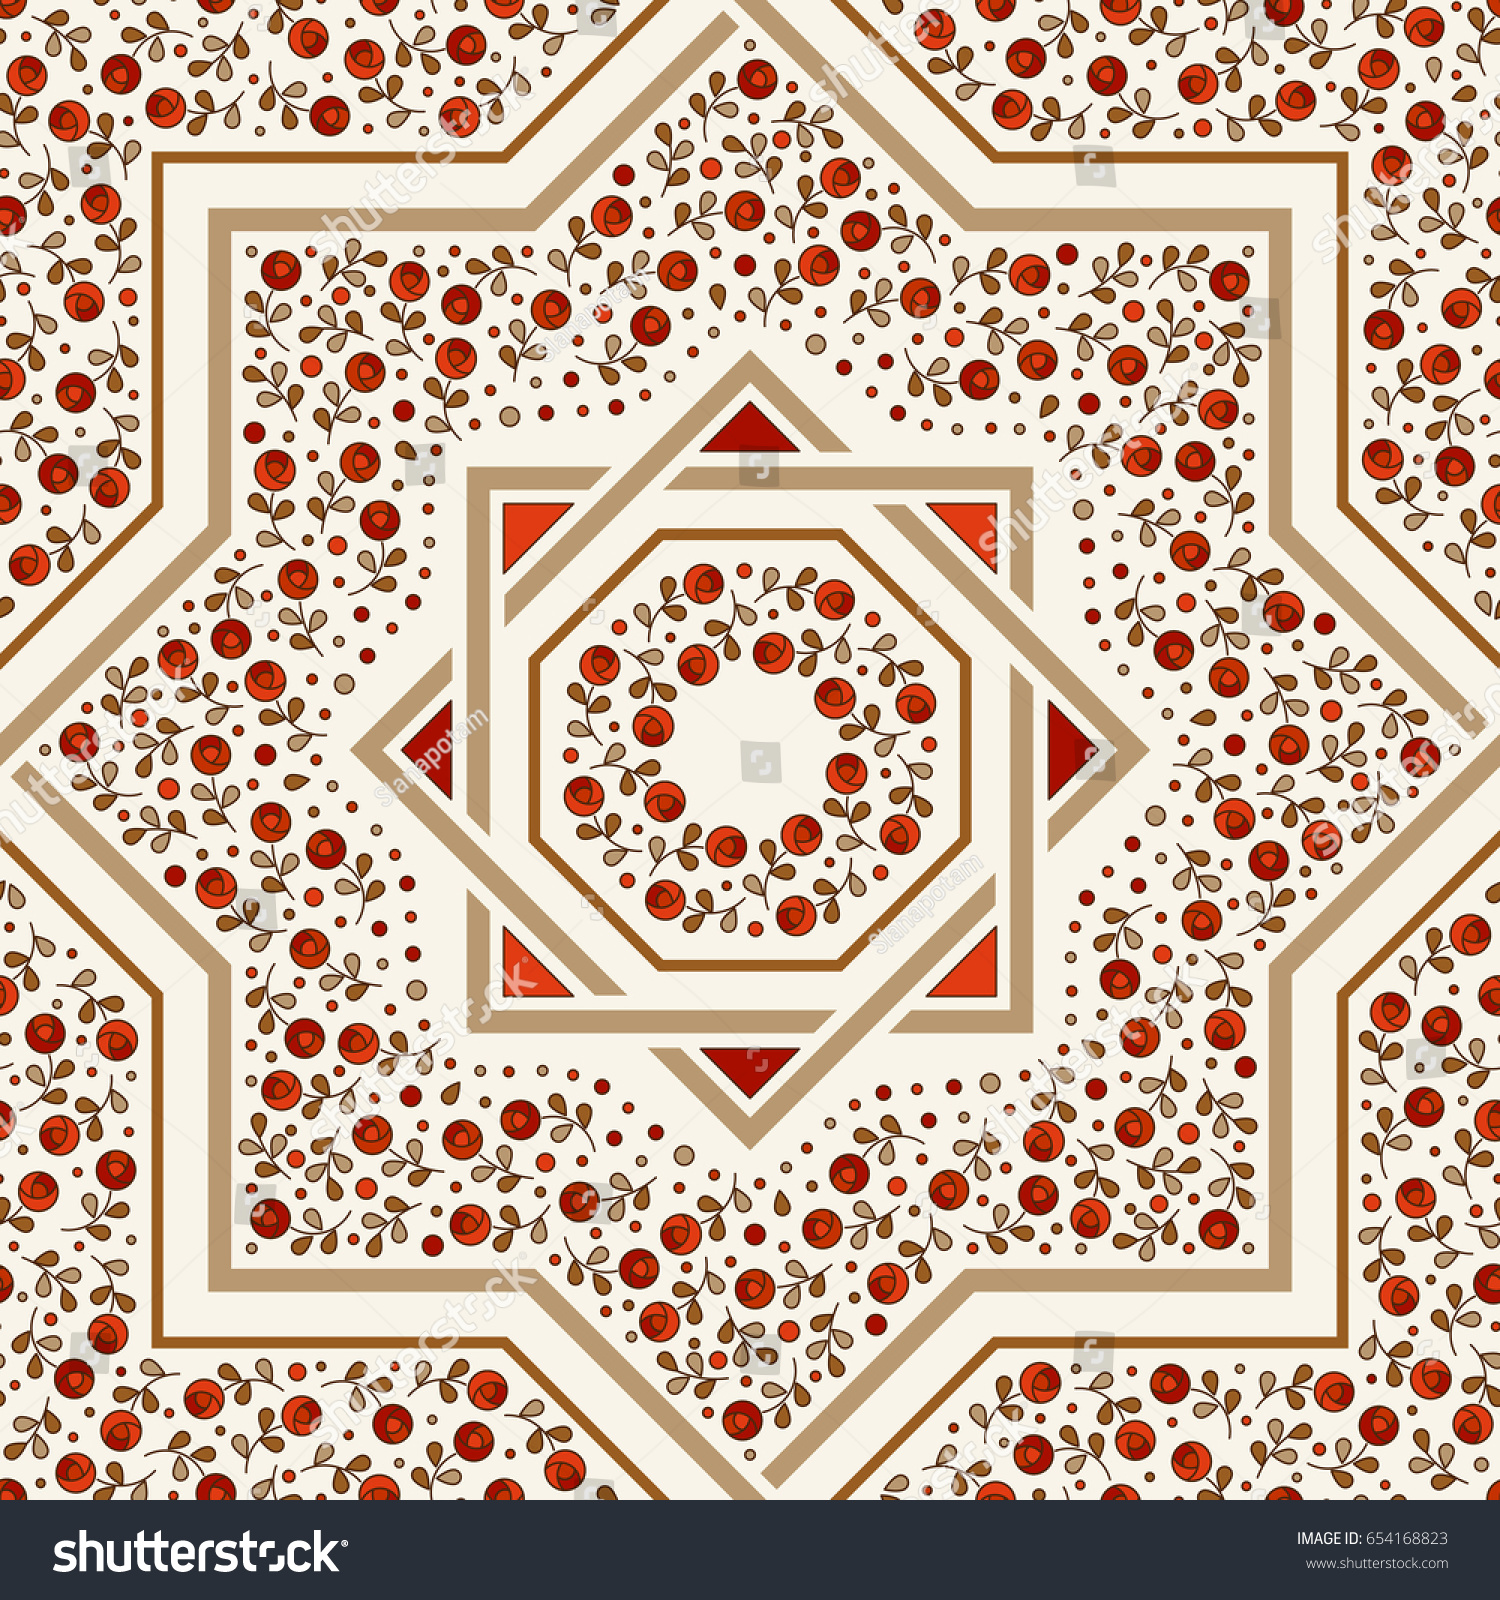 Patterned floor tile moroccan pattern design stock vector patterned floor tile moroccan pattern design eight ray star seamless vector pattern dailygadgetfo Image collections